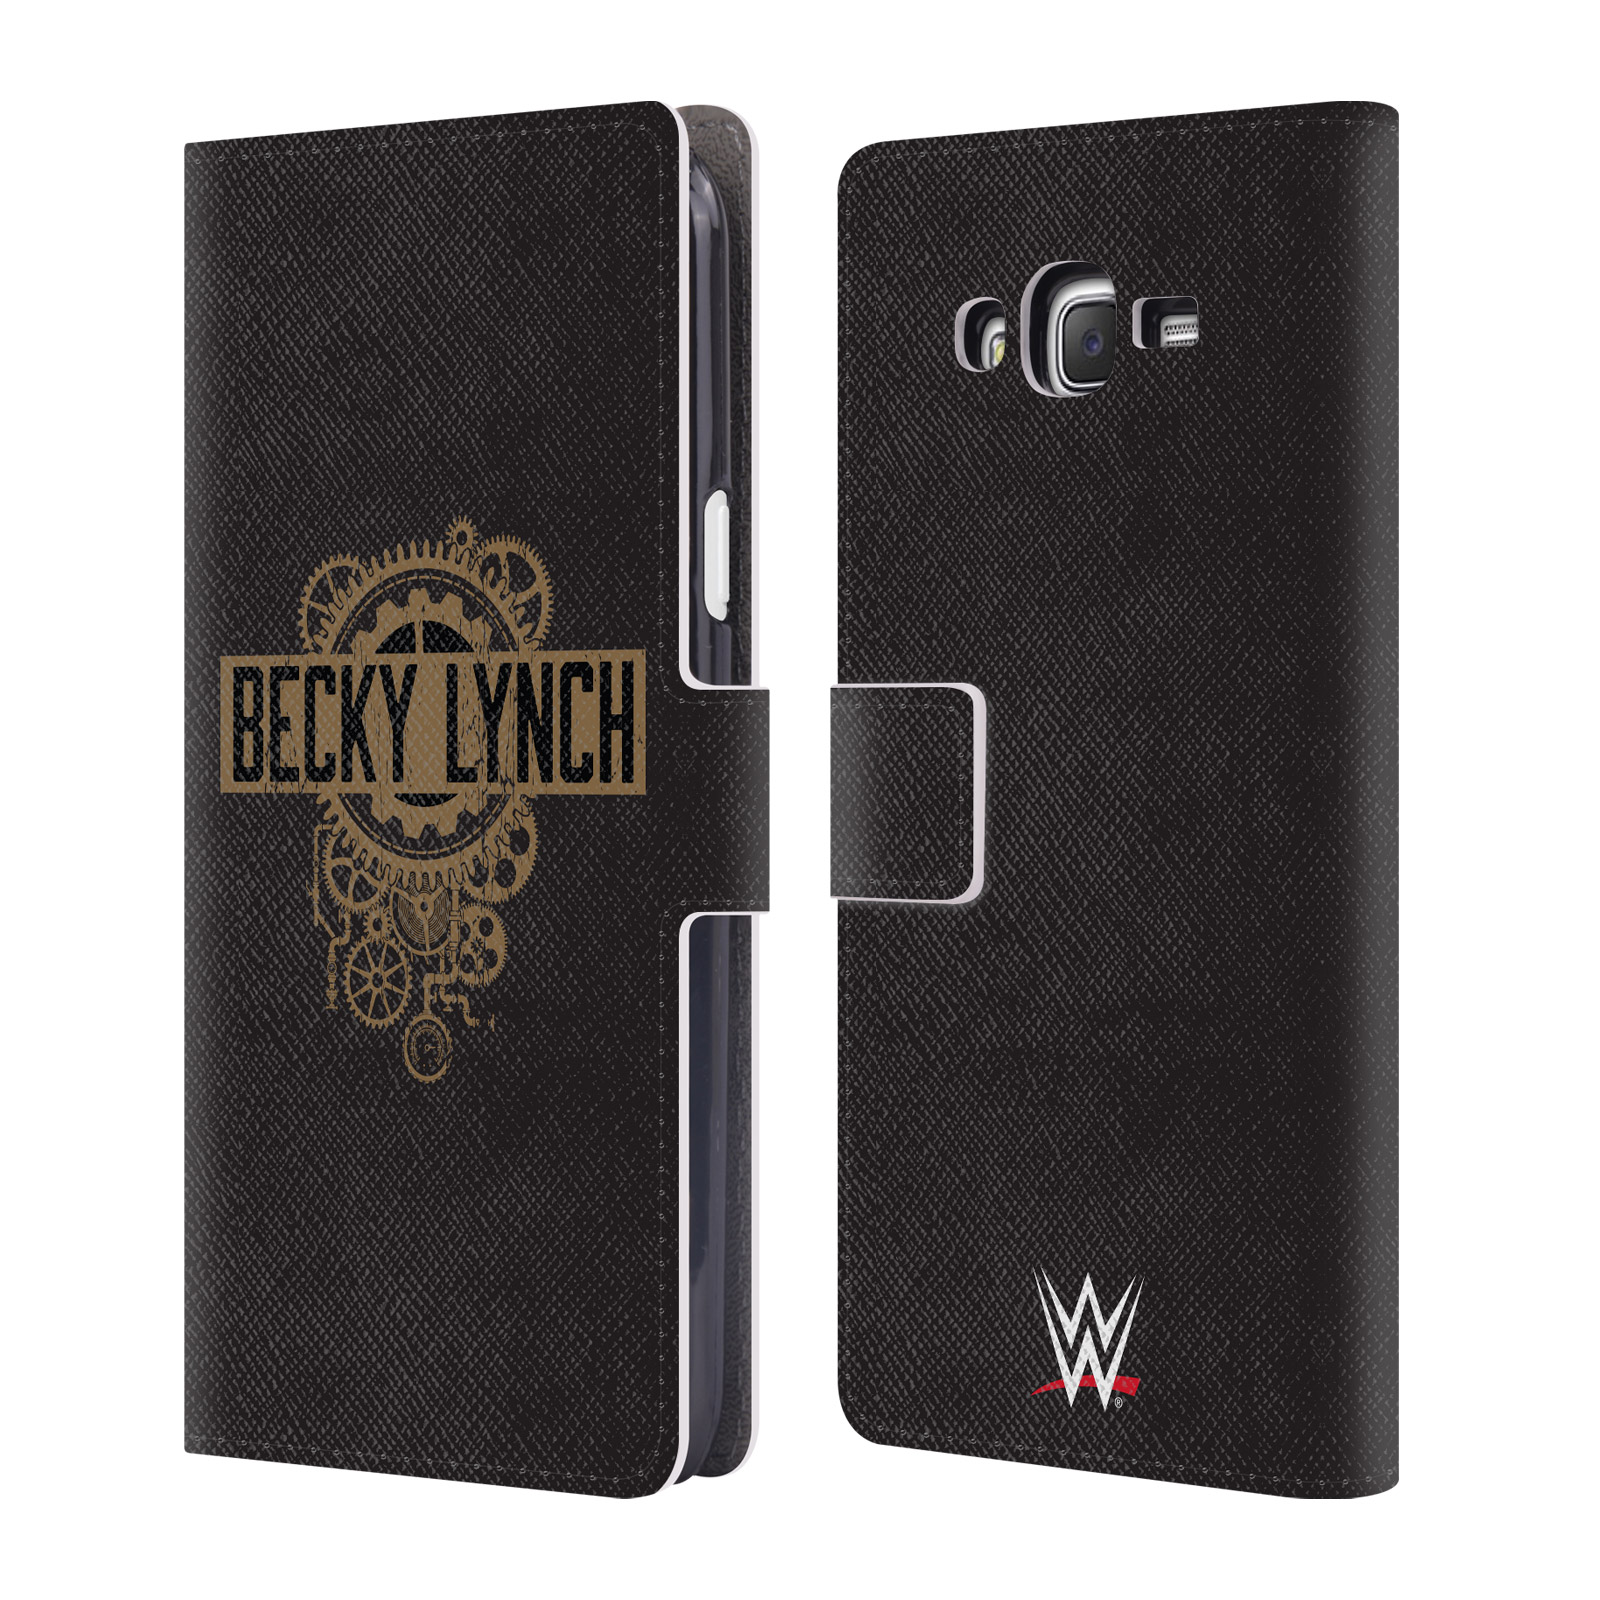 OFFICIAL WWE BECKY LYNCH LEATHER BOOK WALLET CASE COVER FOR SAMSUNG PHONES 3